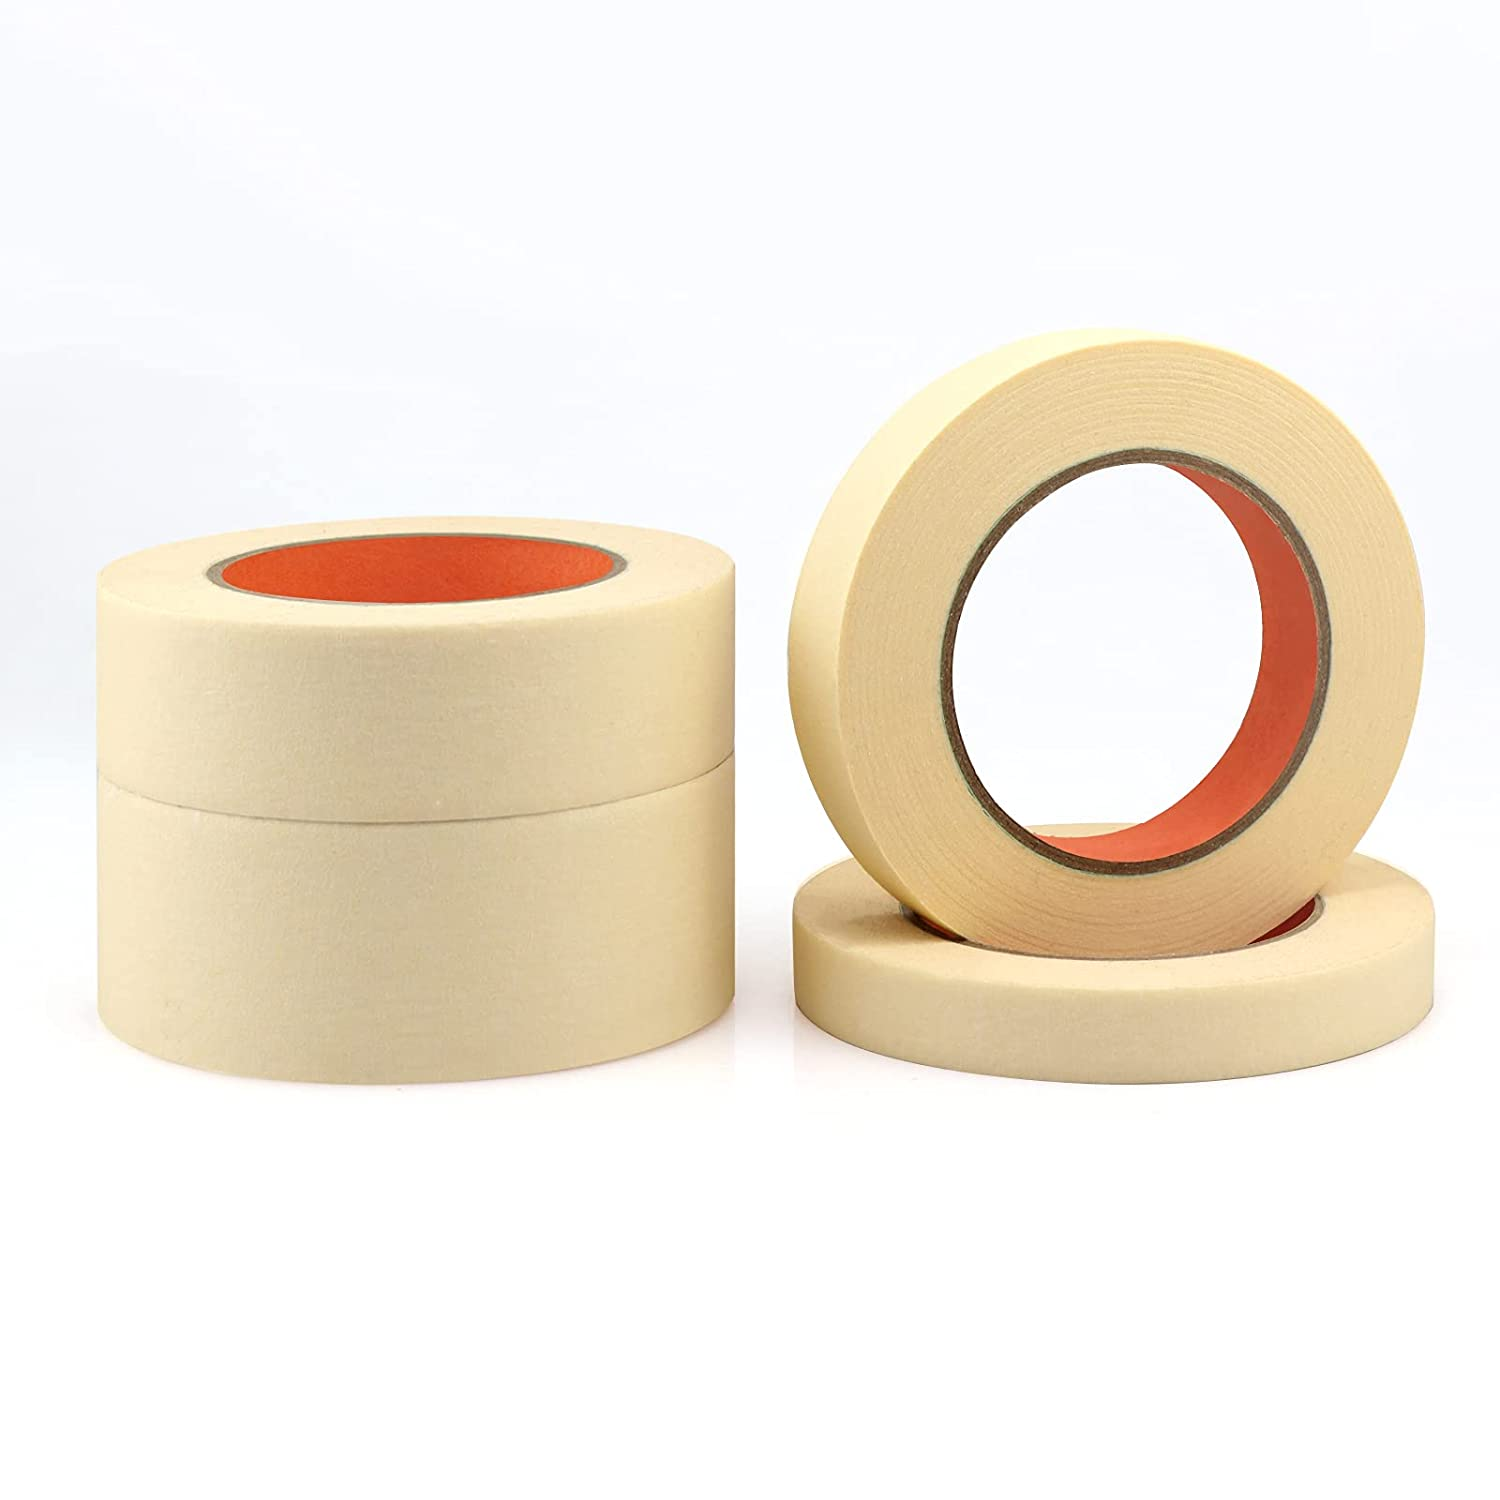 9Rolls (540 Yards Total) General Purpose Beige White Masking Tape 1 inch by 60Yard Decorative Home and Office Craft Tape for Basic Use Premium Painters Decoration Masking Paper